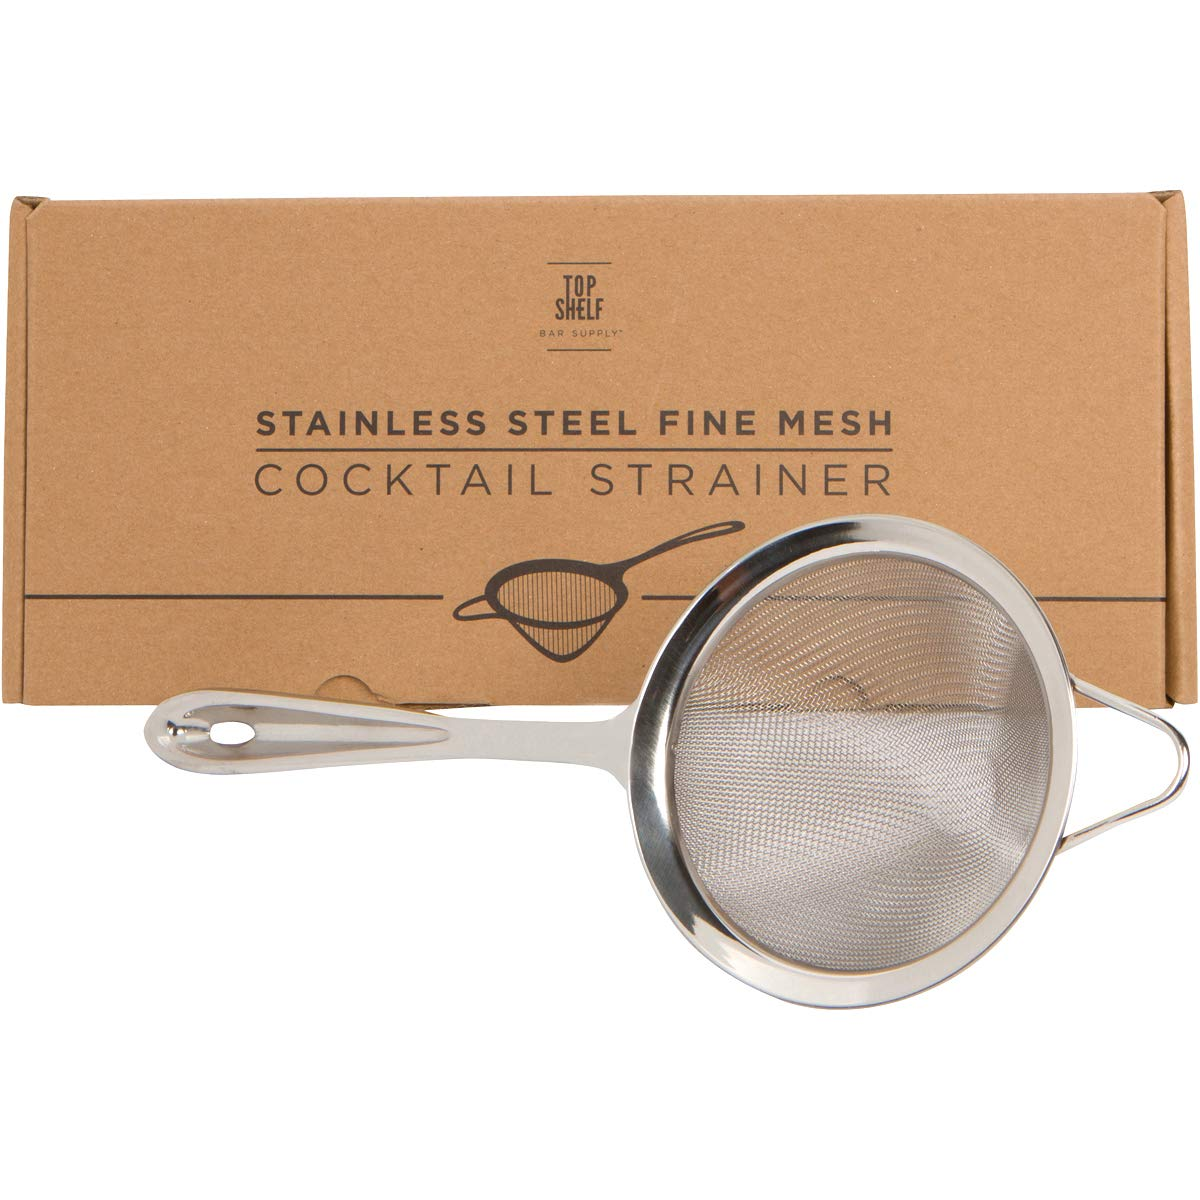 Fine Mesh Cocktail & Tea Strainer: Stainless Steel Conical Strainer by Top Shelf Bar Supply by Top Shelf Bar Supply